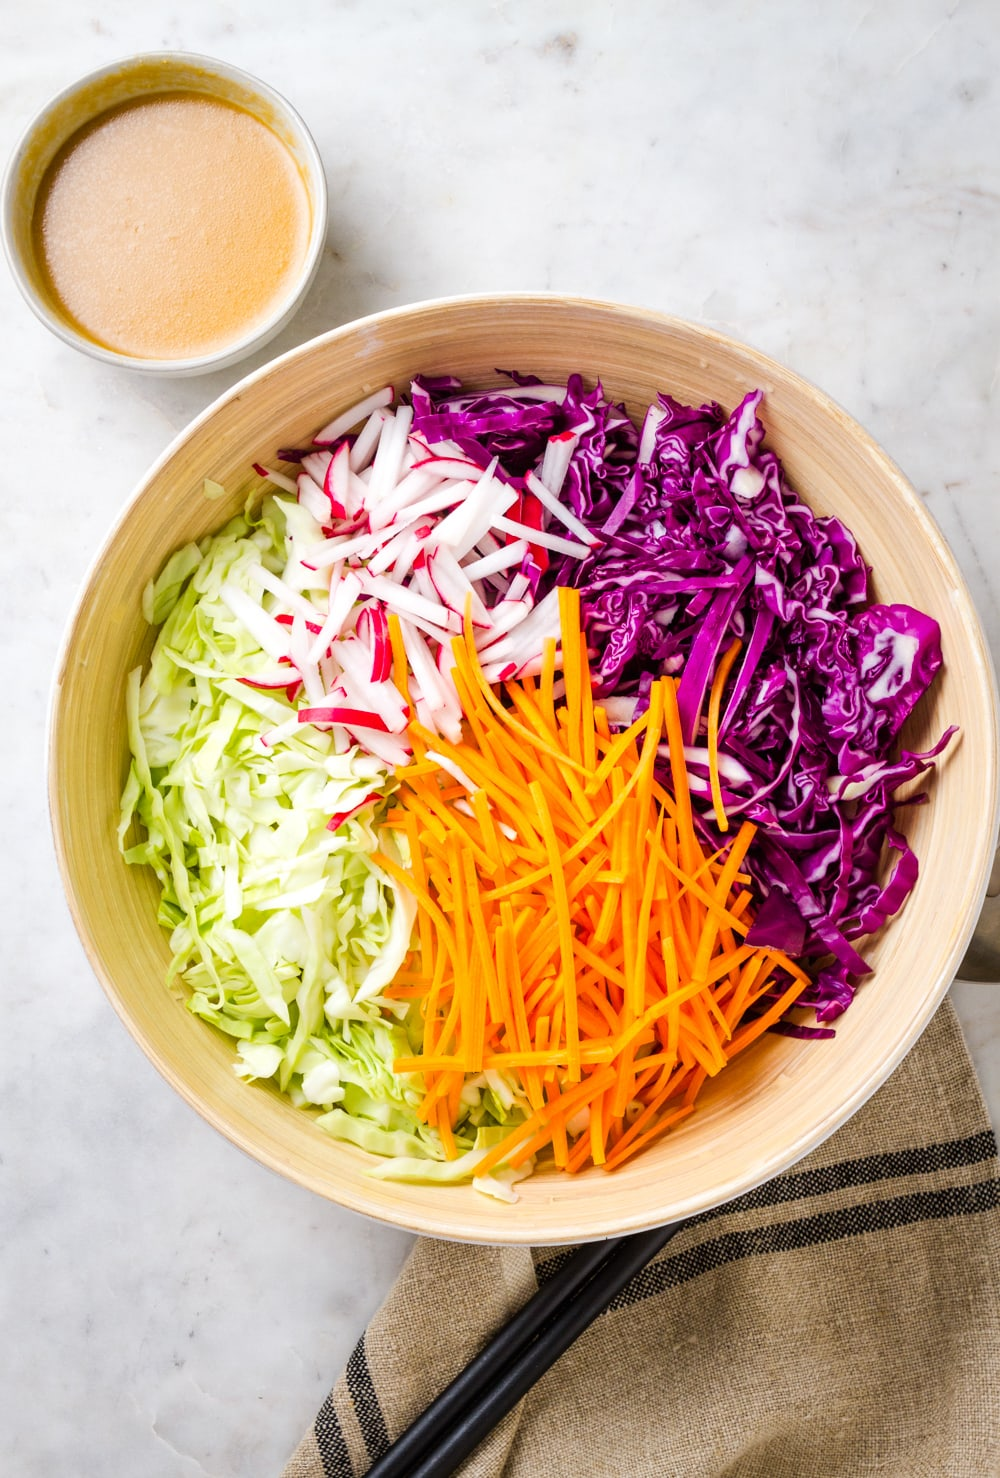 top down view of a mixing bowl with ingredients added for making slaw salad just before mixing.